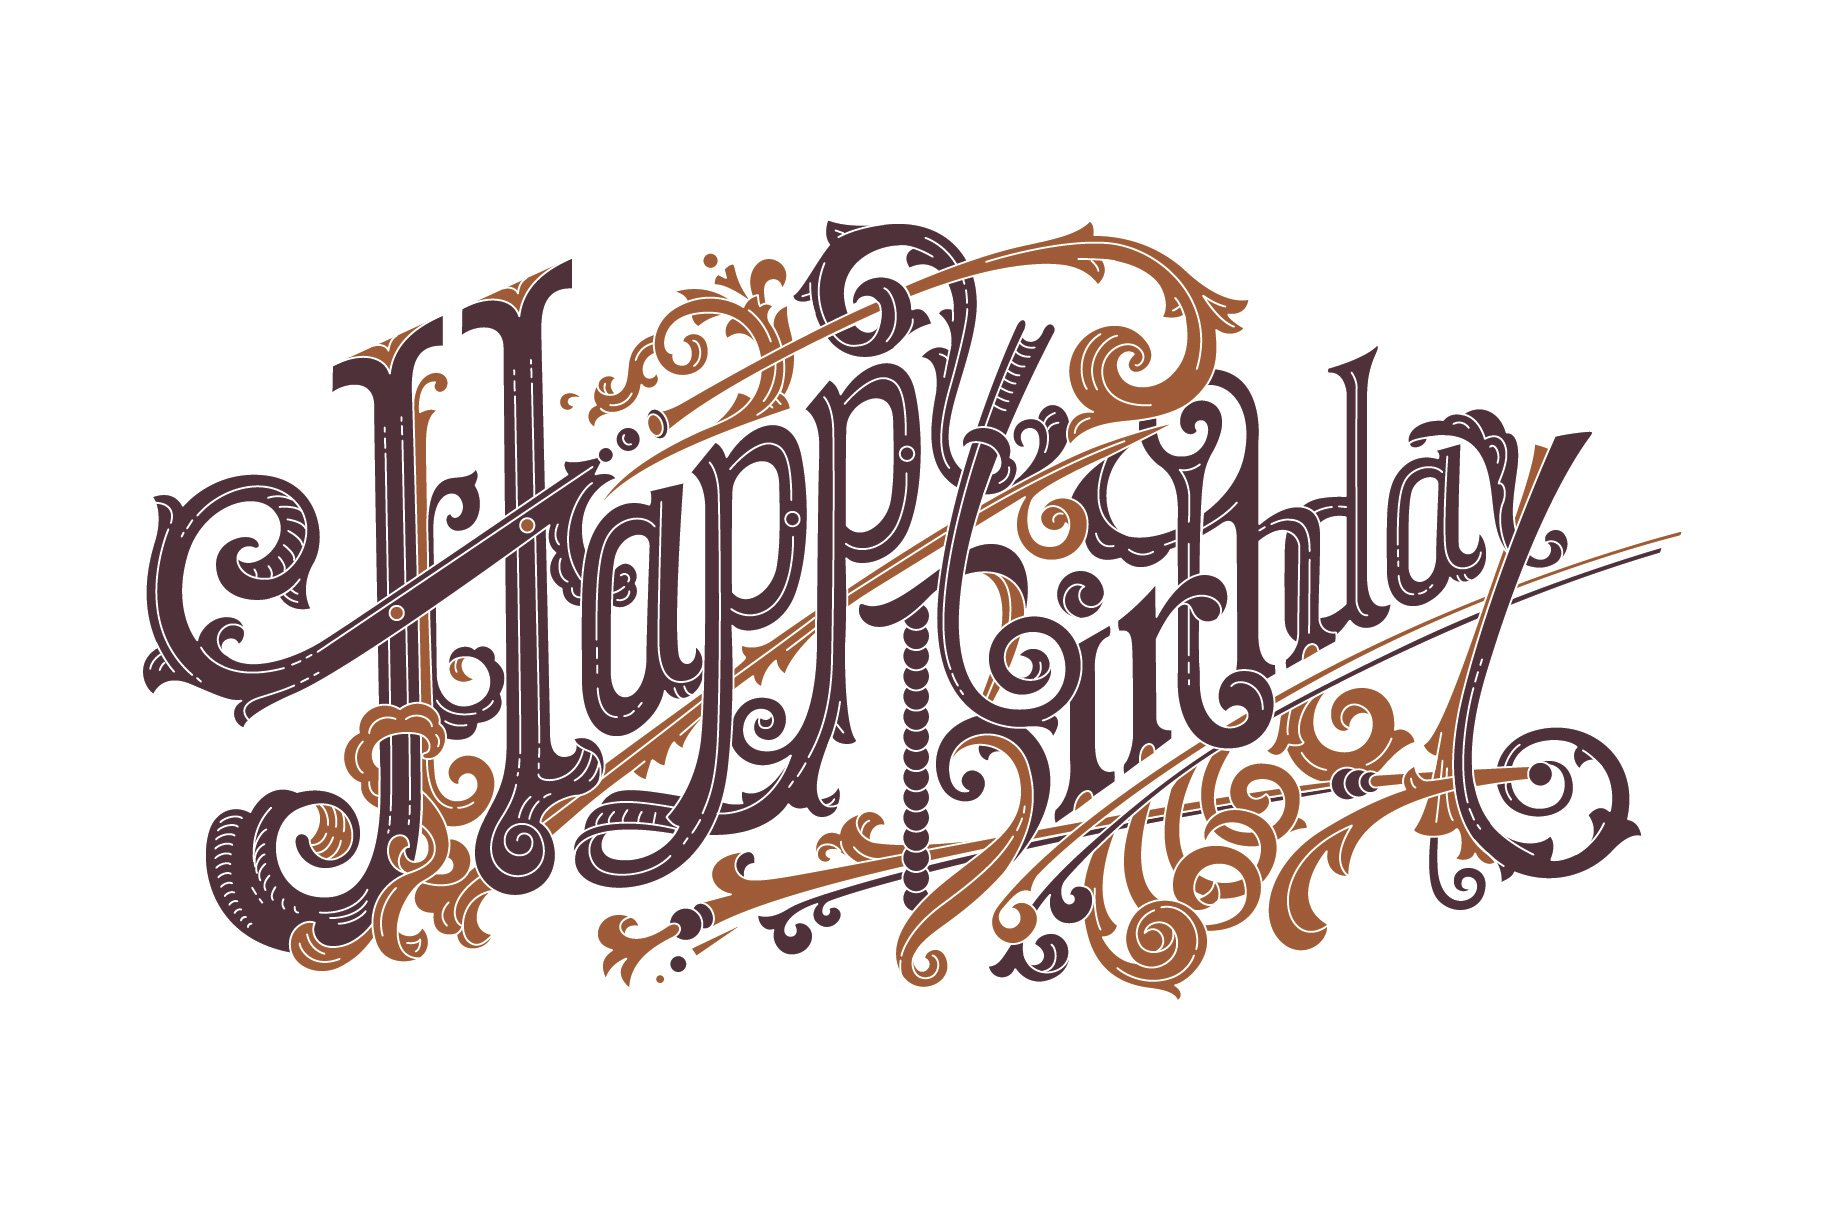 calligraphy happy birthday in different fonts